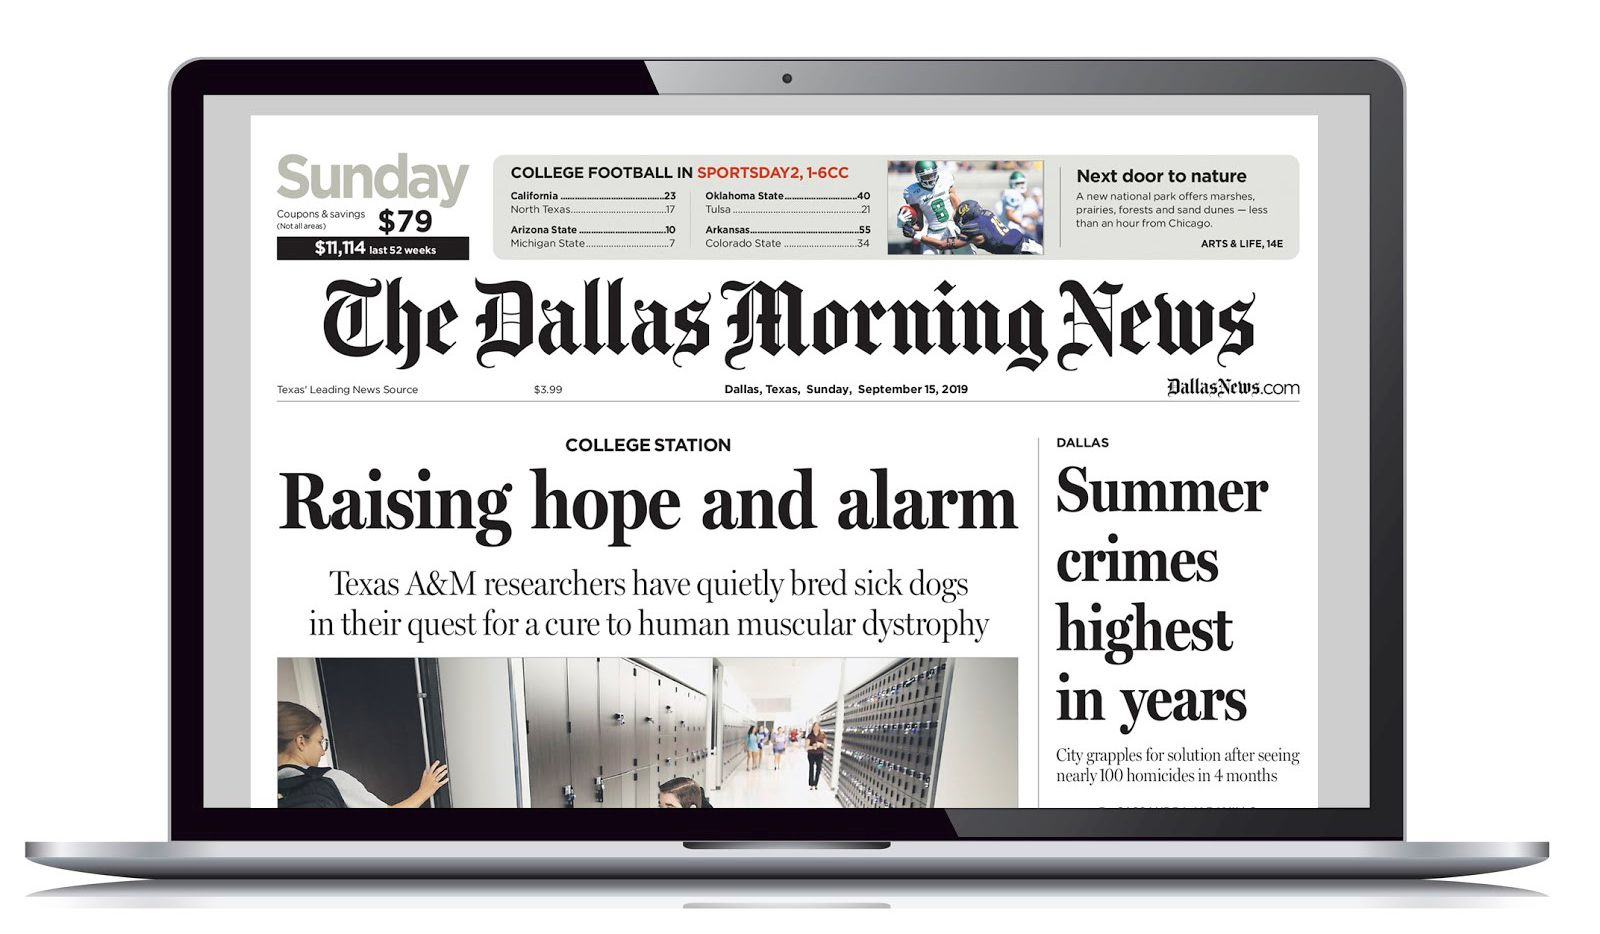 The Dallas Morning News ePaper is available on all laptops and smart phones.